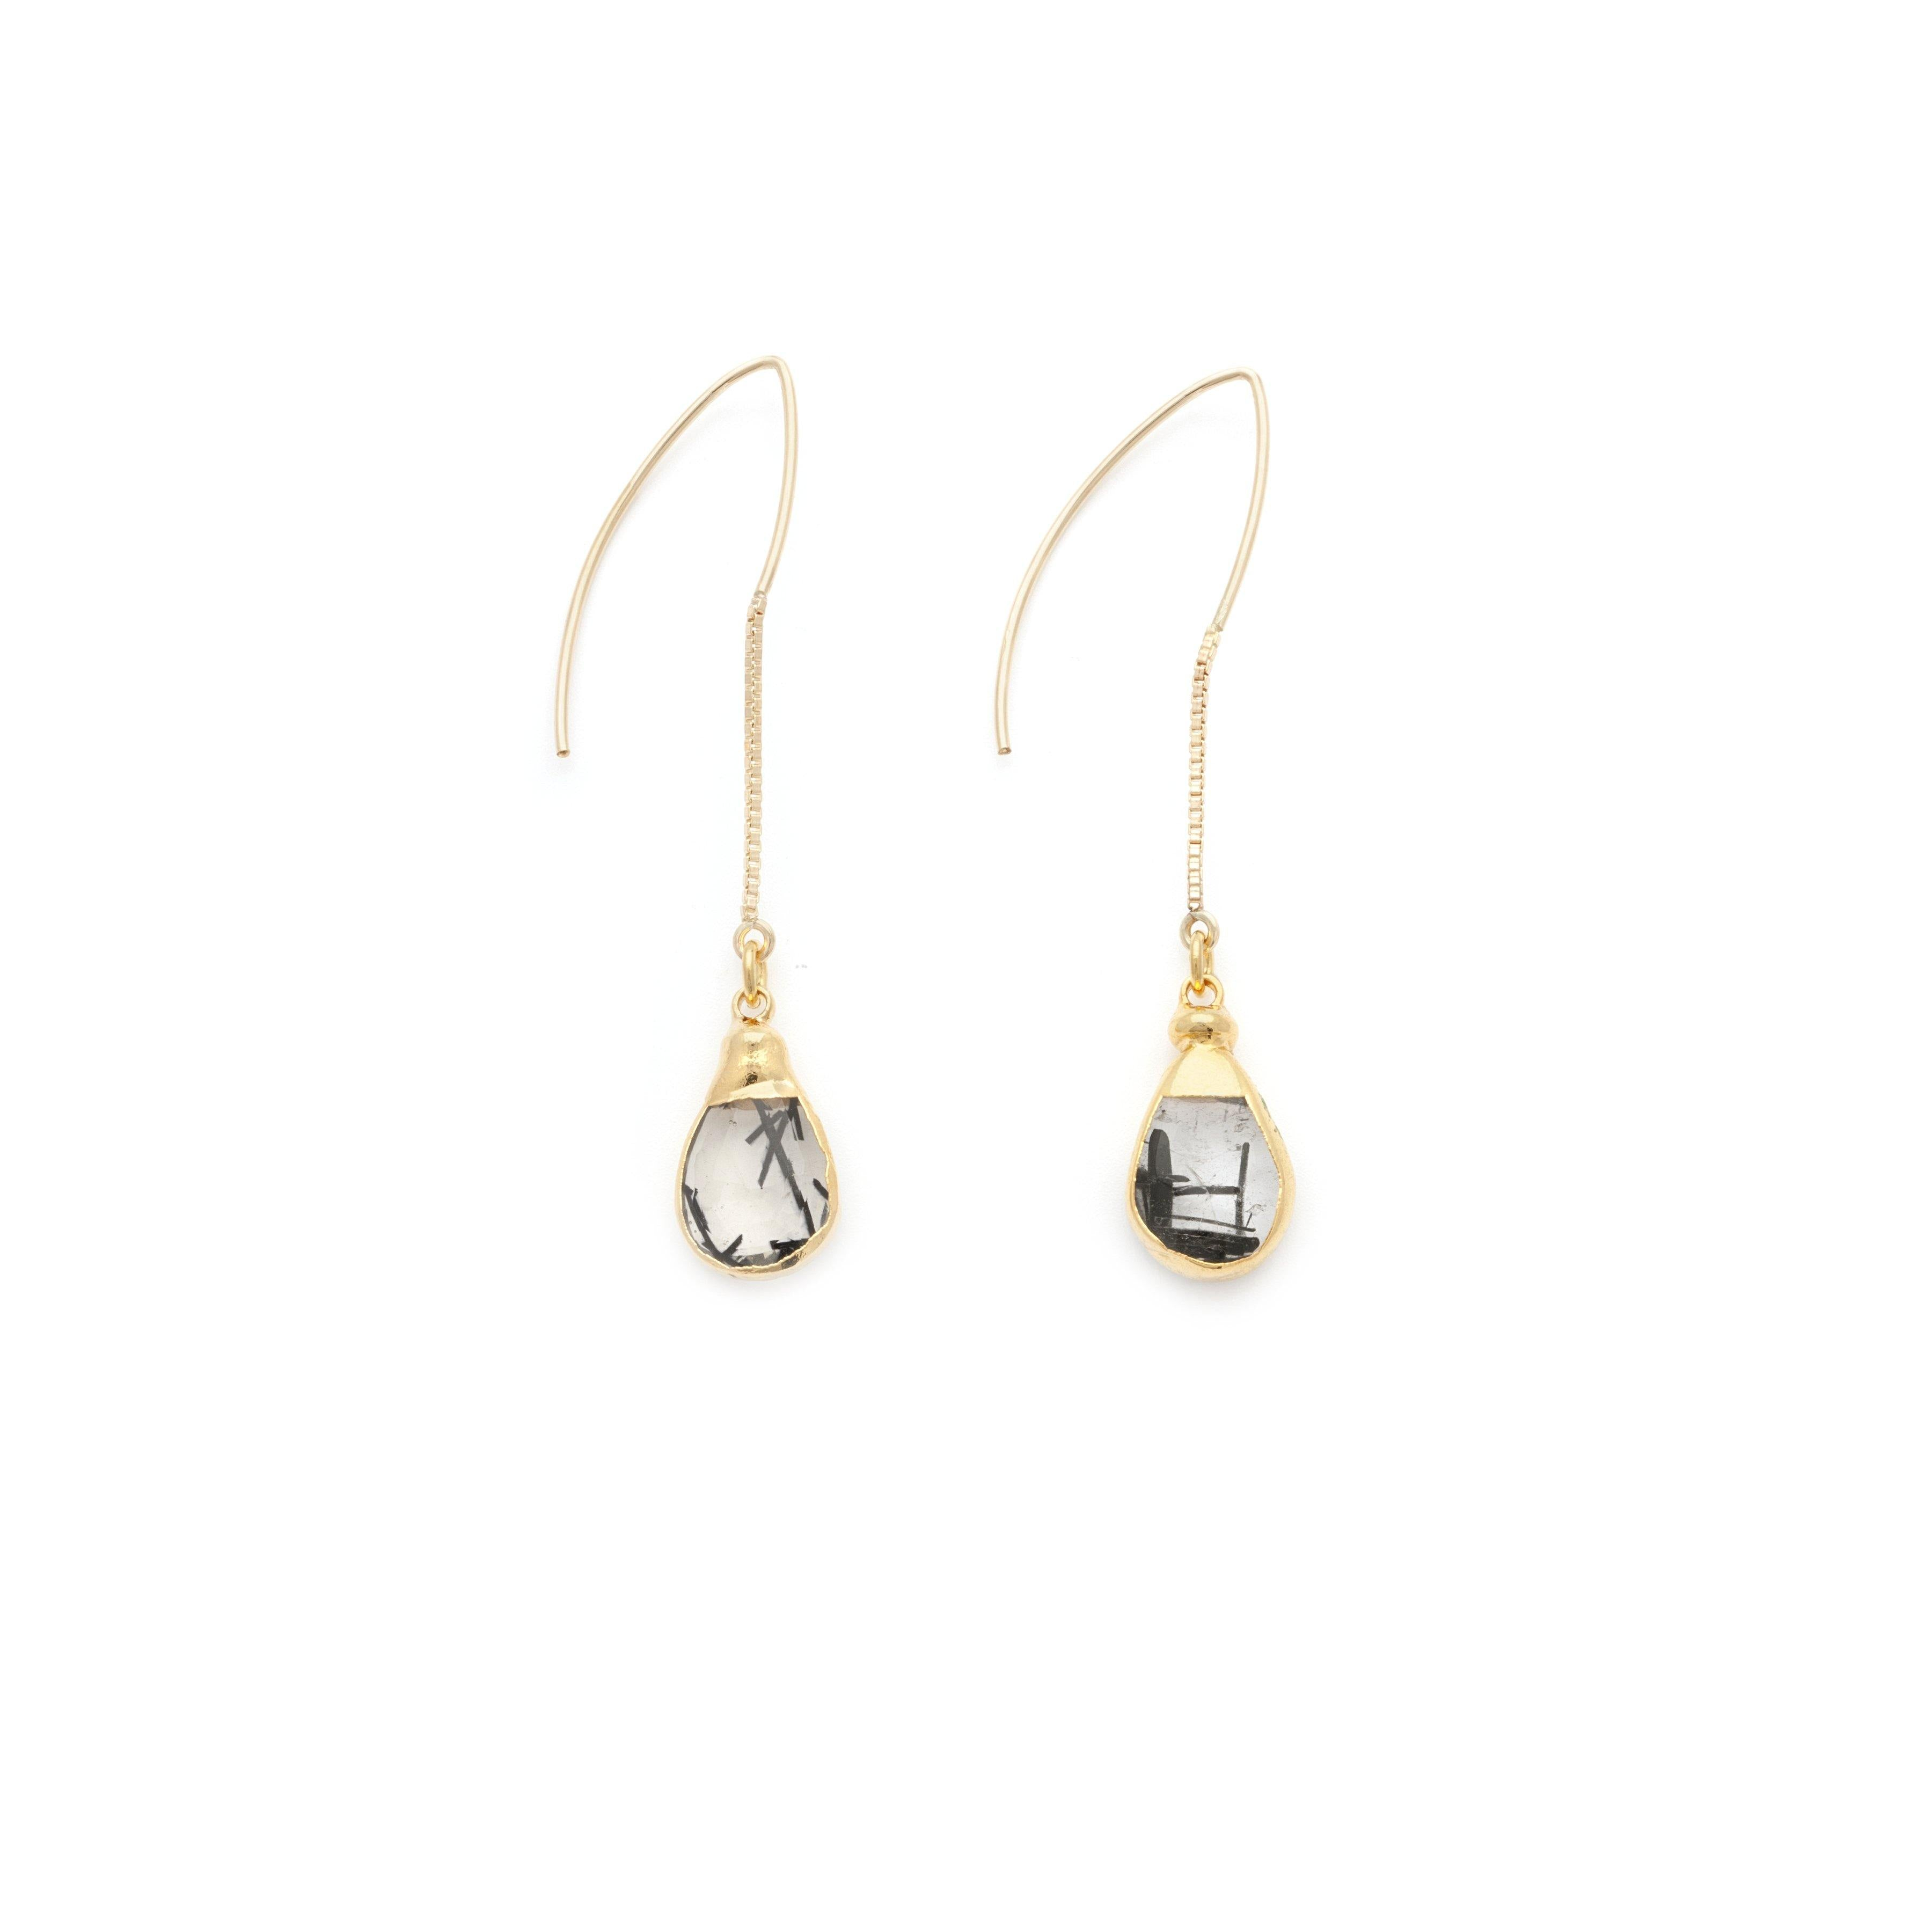 Ritualized Quartz Earrings - Irit Sorokin Designs Canadian handmade jewelry